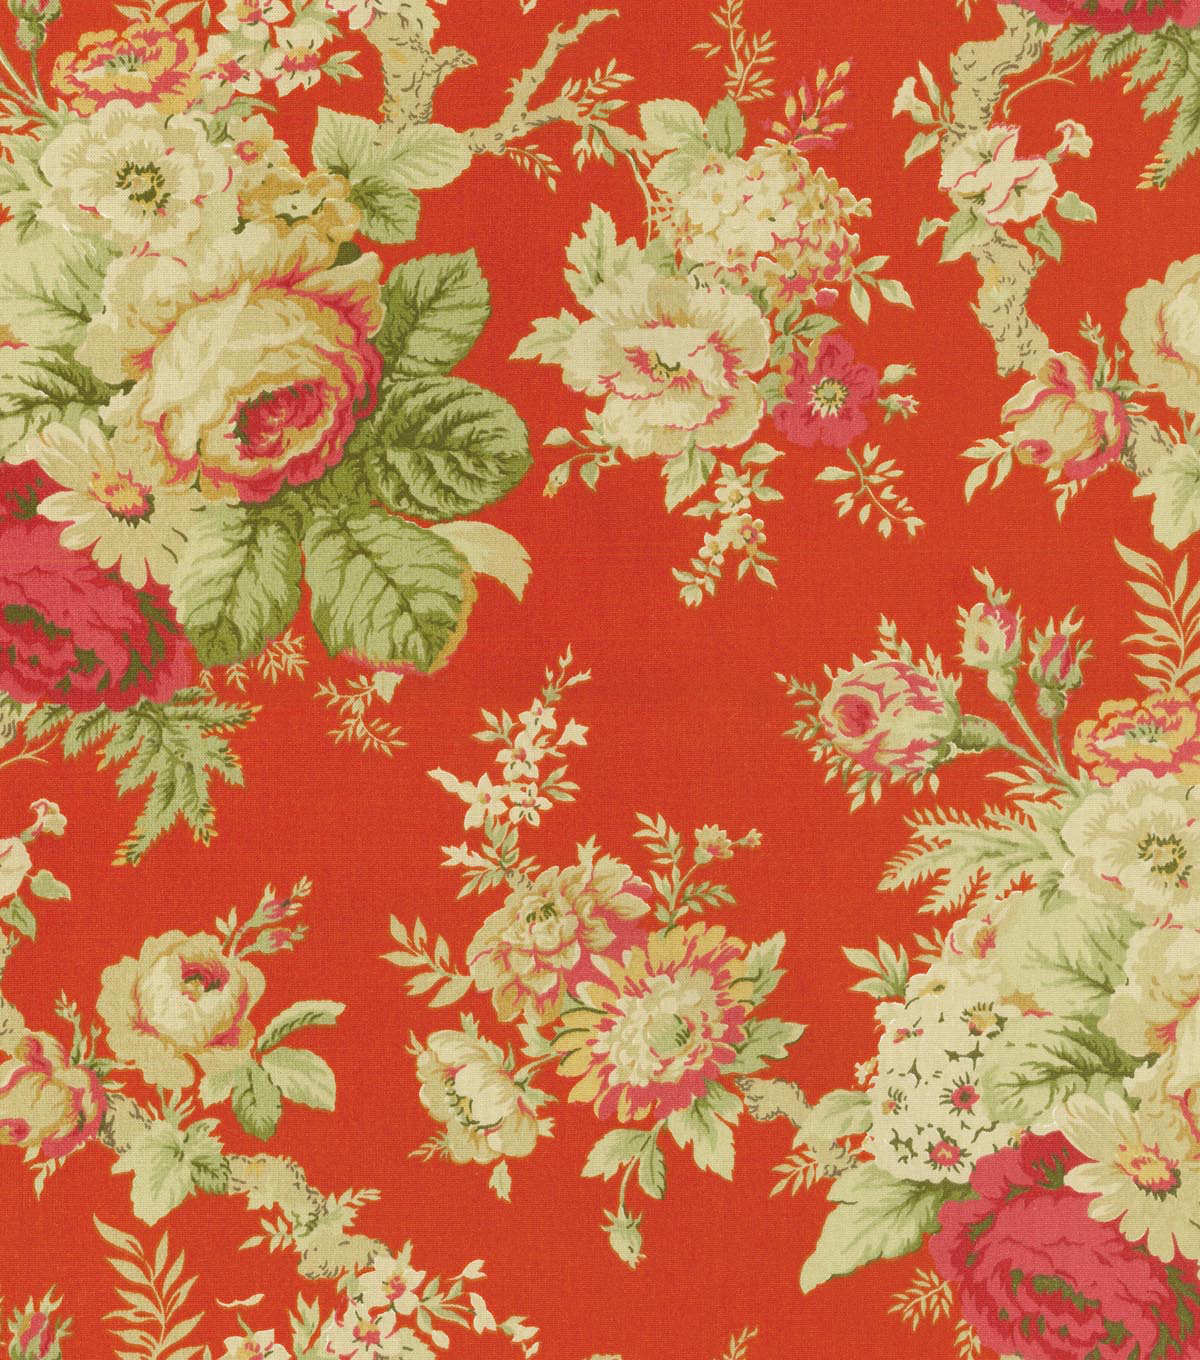 Home Decor 8\u0022x8\u0022 Swatch Fabric-Waverly Sanctuary Rose Crimson